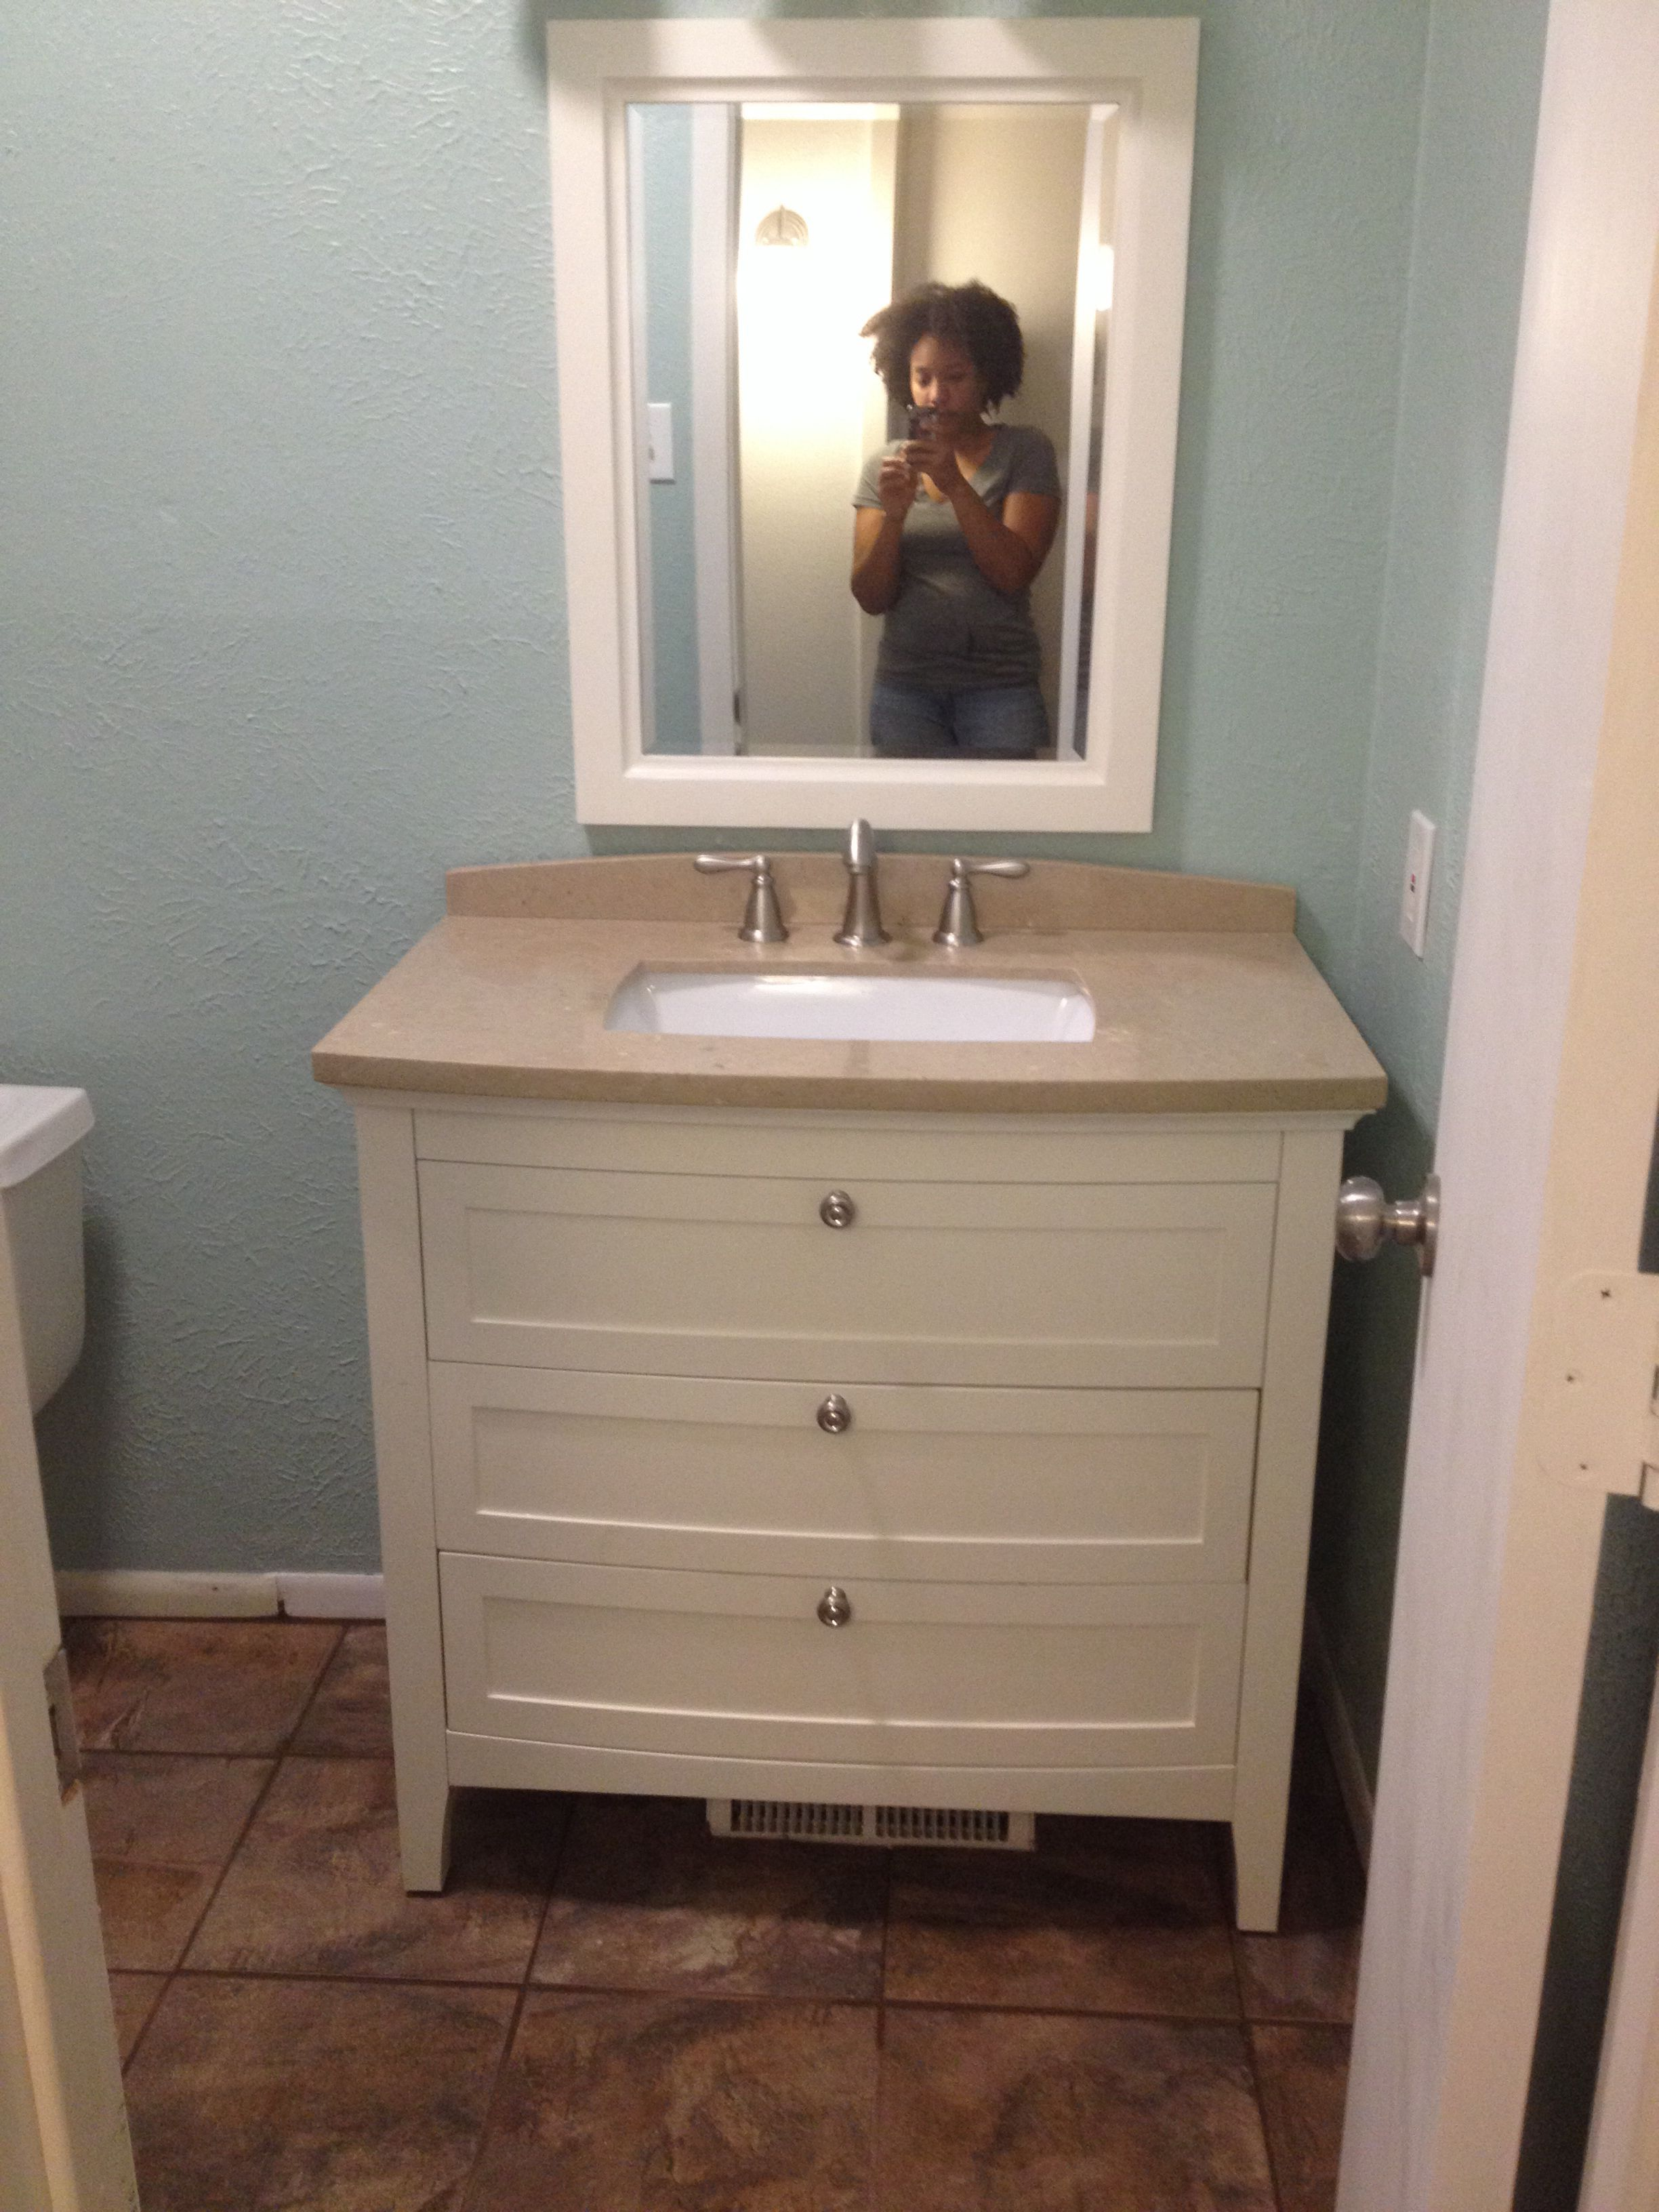 Lowe S Norbury Vanity Olympic Sea Sprite Wall Color And Me In The Mirror Lol